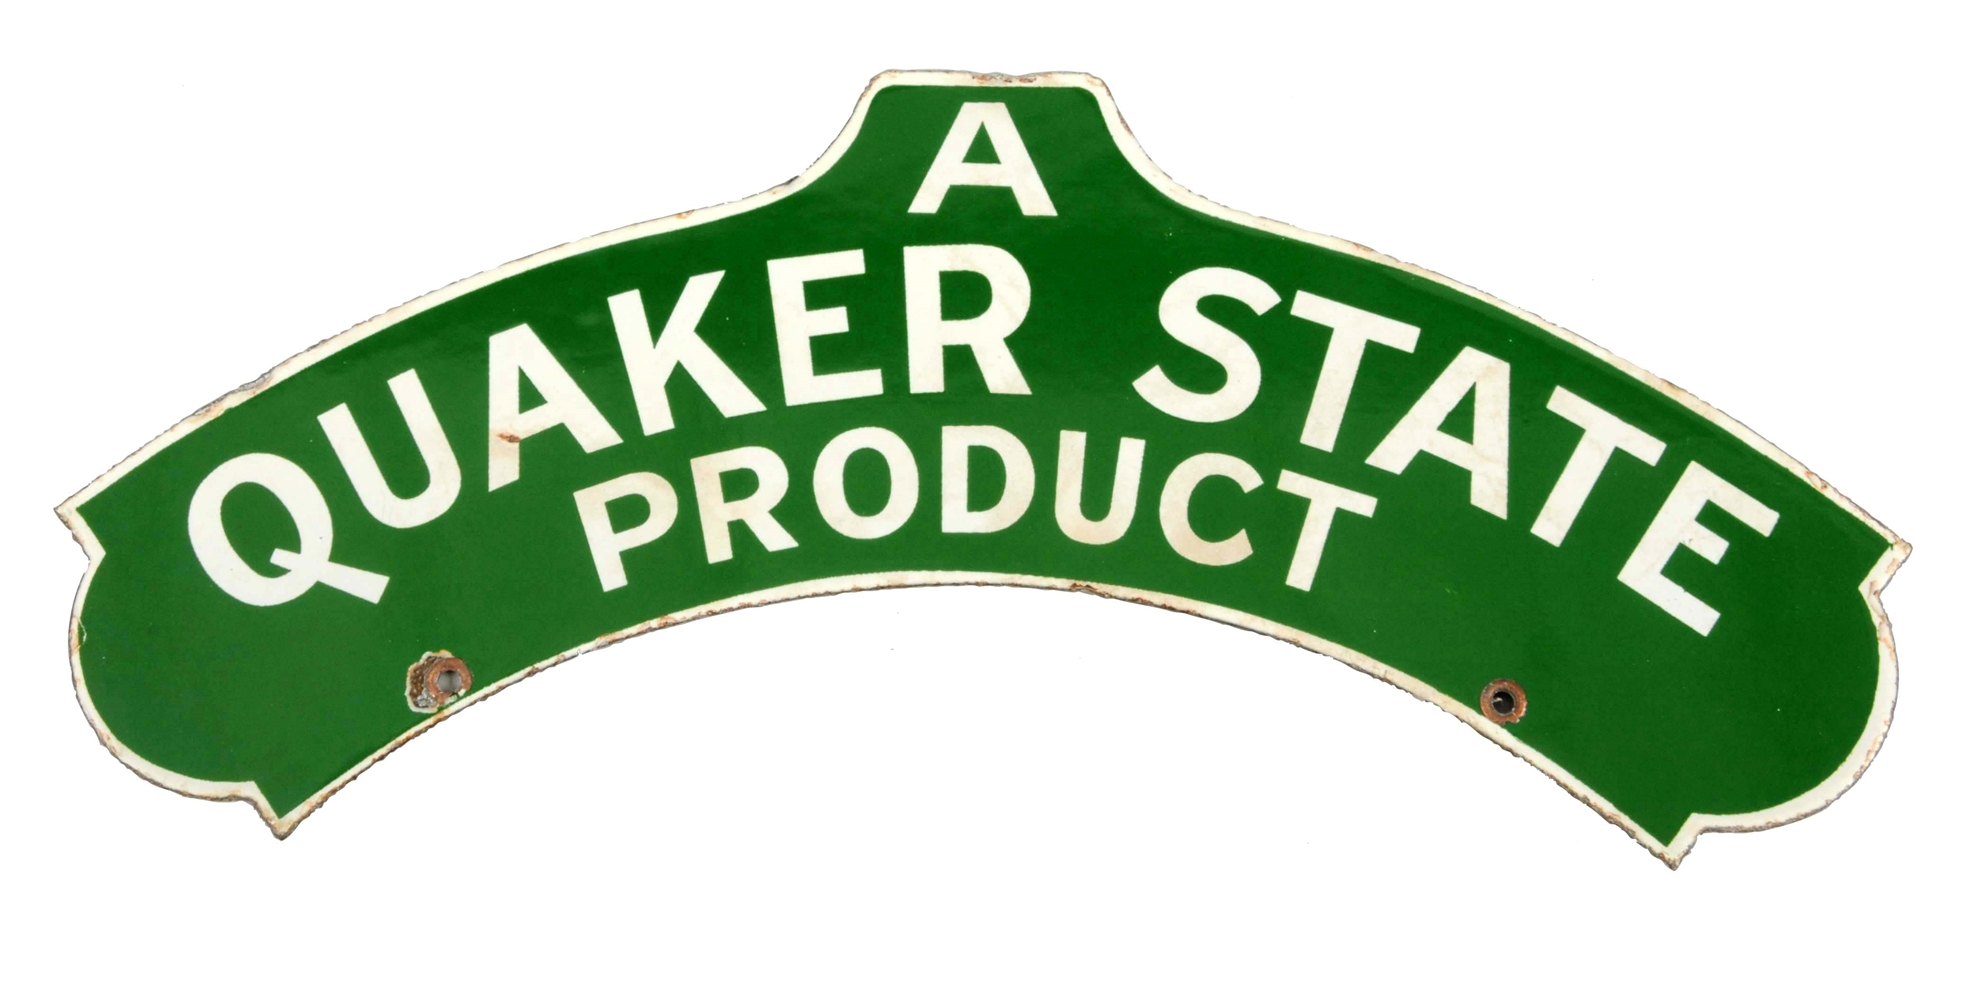 Quaker State Product Diecut Porcelain Sign.